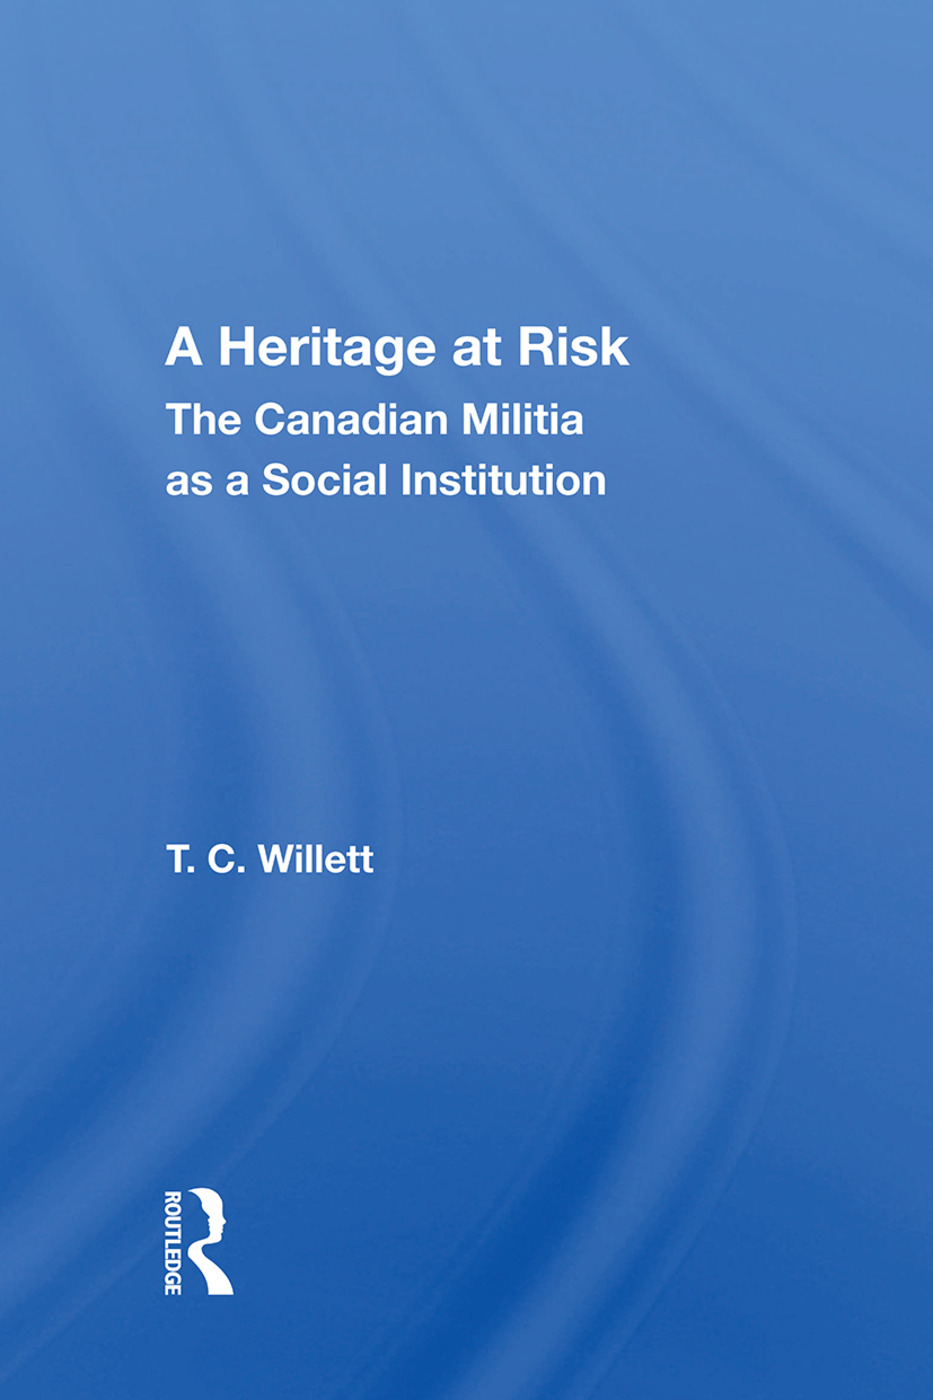 A Heritage at Risk